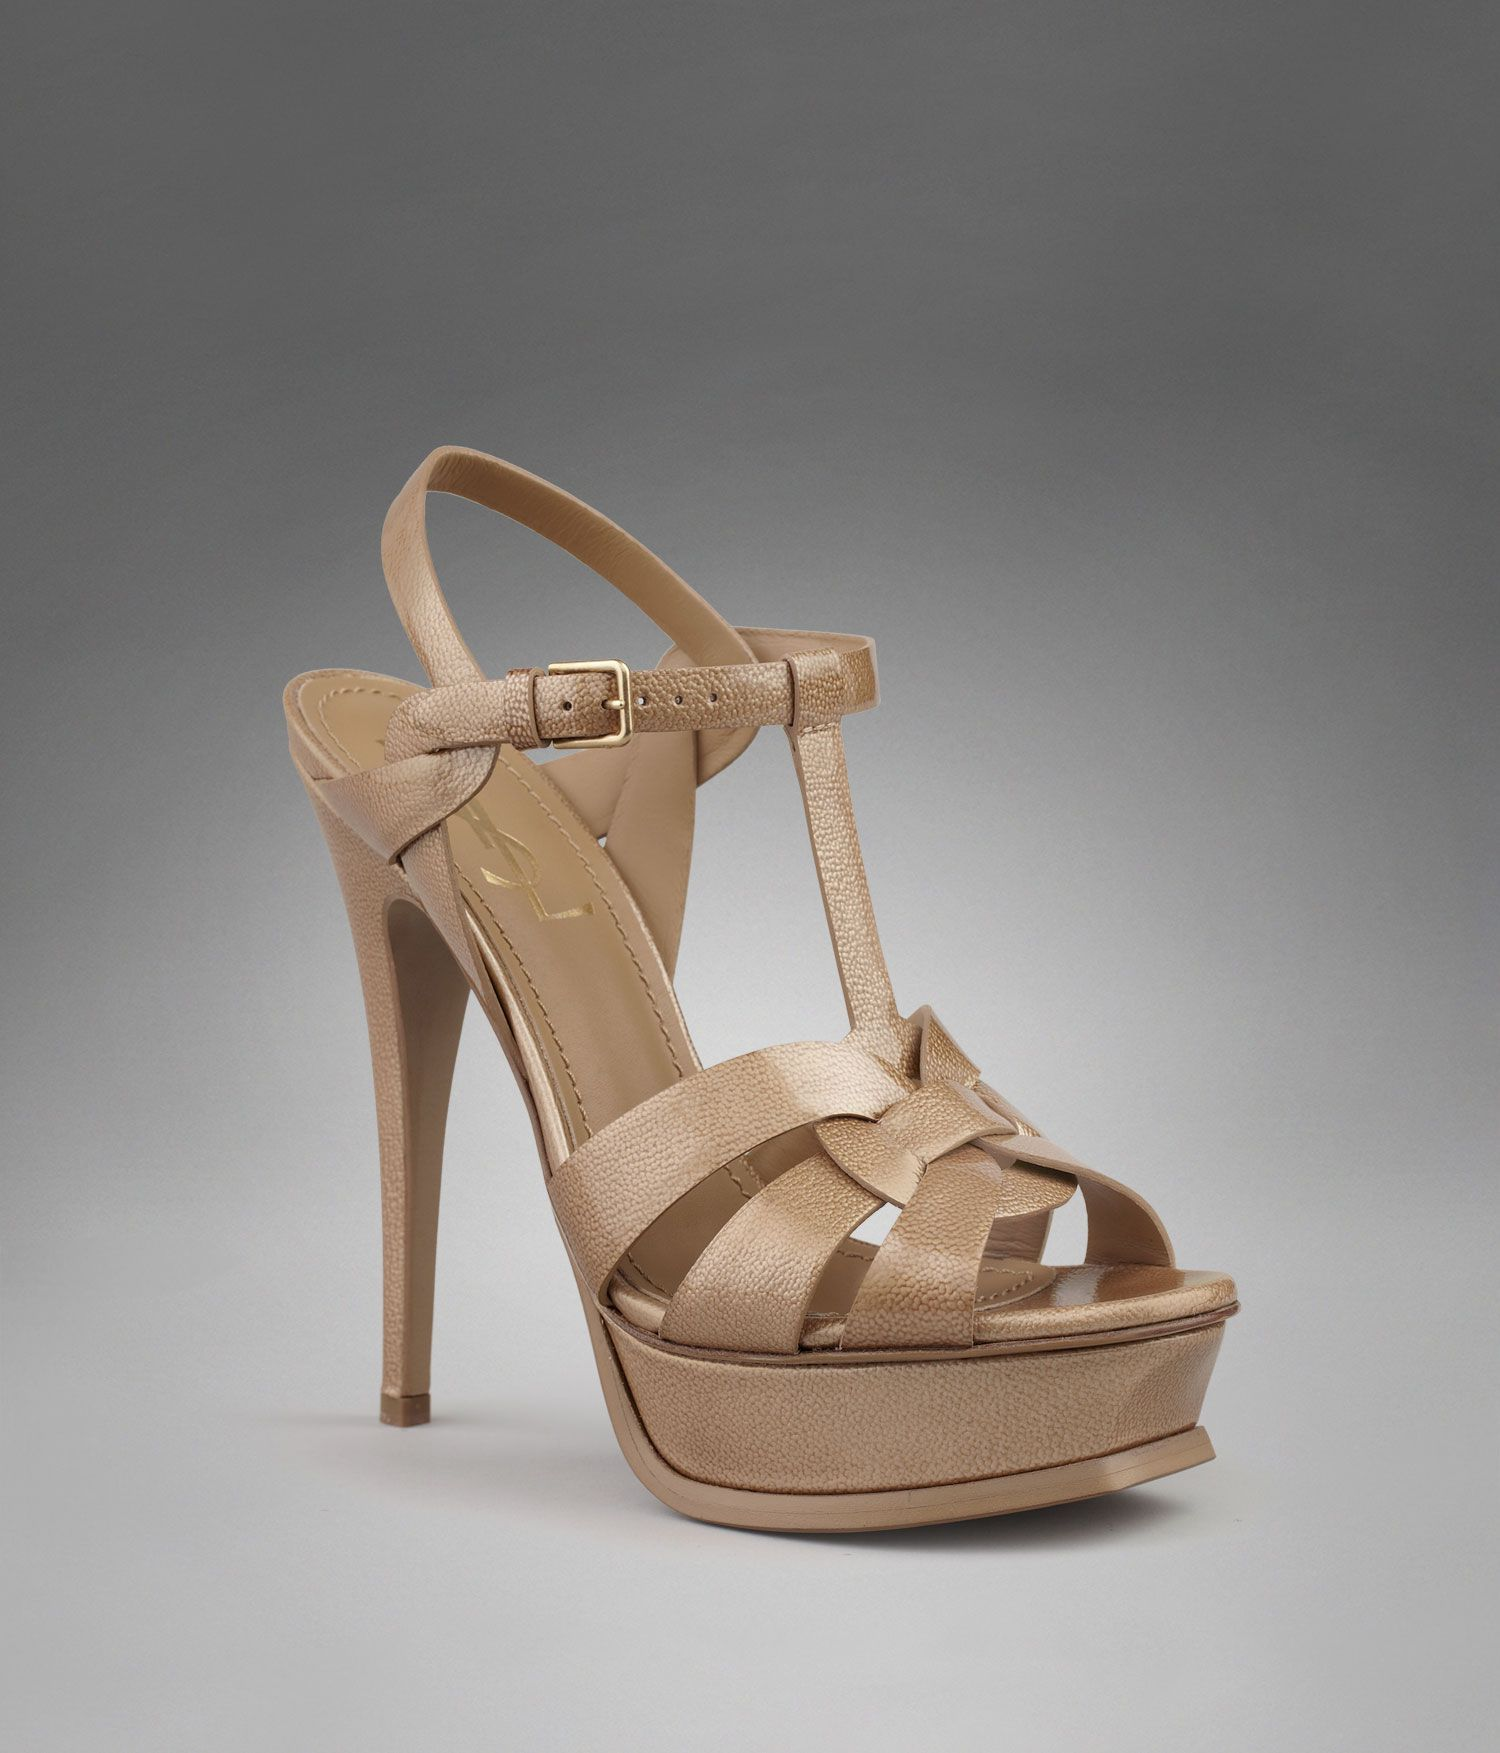 Ysl Tribute High Heel Sandal In Beige Graphic Patent Leather Sandals Shoes Women Yves Saint Laurent Ysl Women Shoes Sandals Heels High Heel Sandals